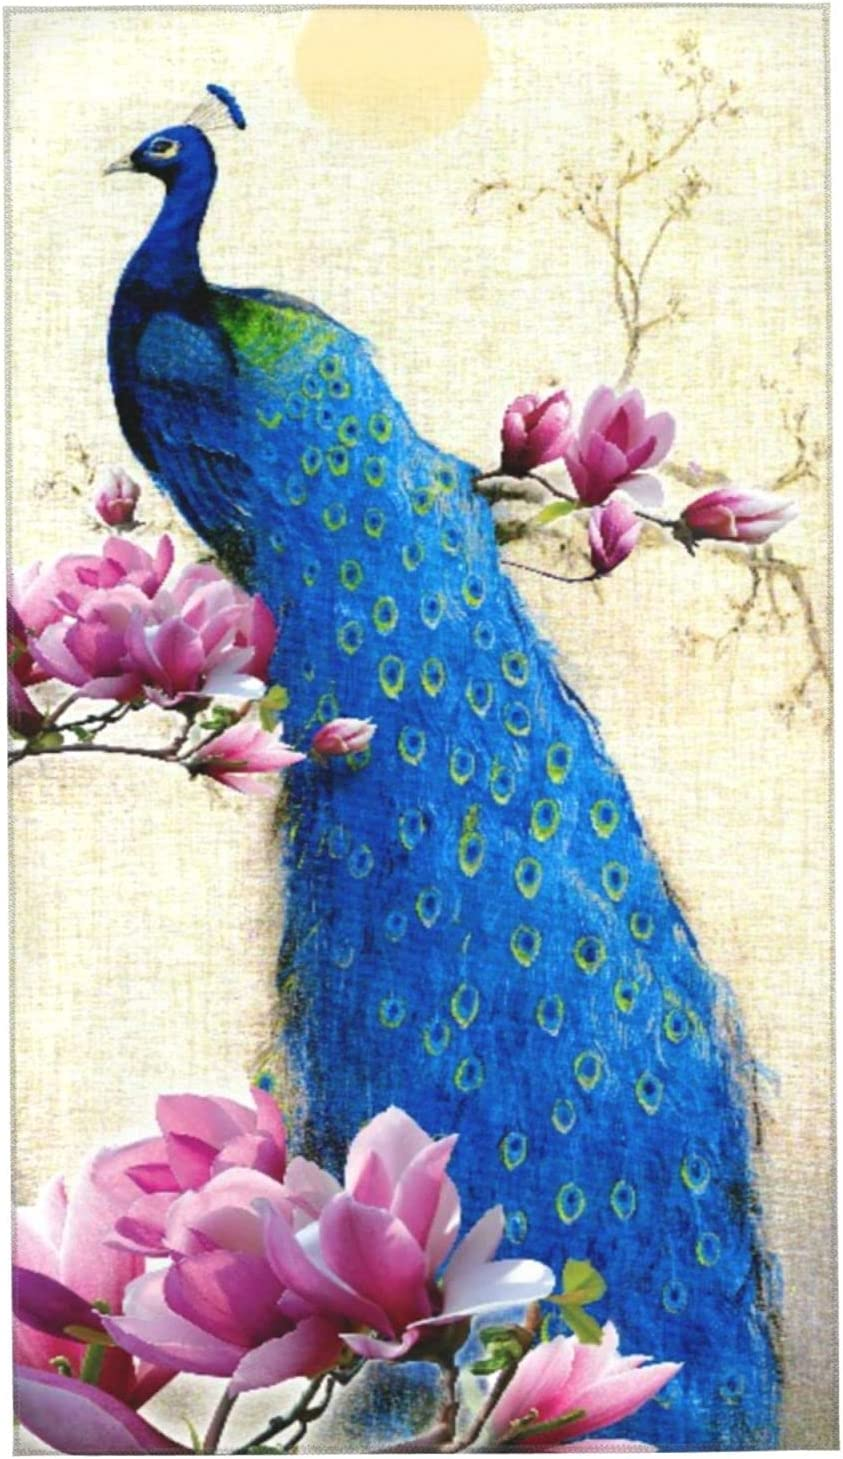 KENADVI Hand Towels Peacock with Blossom Magnolia Free Shipping Cheap Bargain Gift Outlet SALE Tree Beautiful